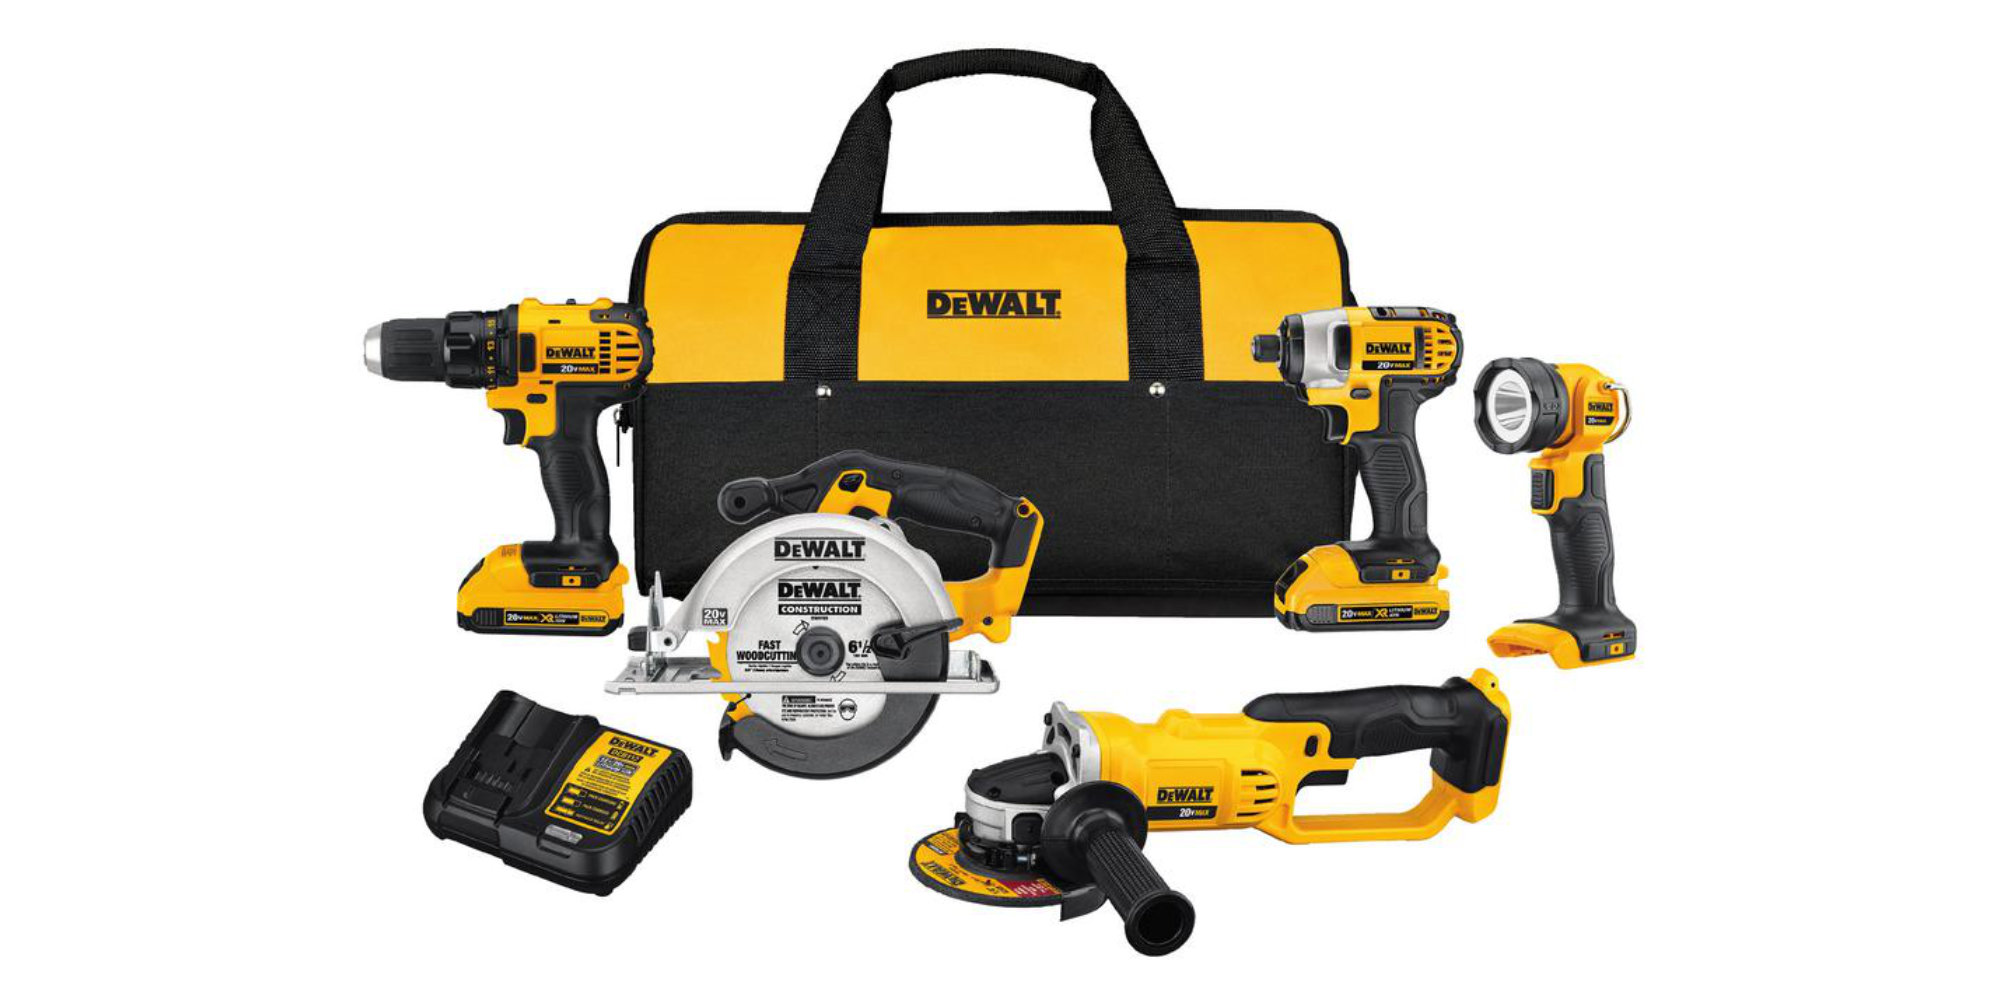 Amazon slashes $180 off DEWALT's 5-Tool Combo Kit at $349, more from $99